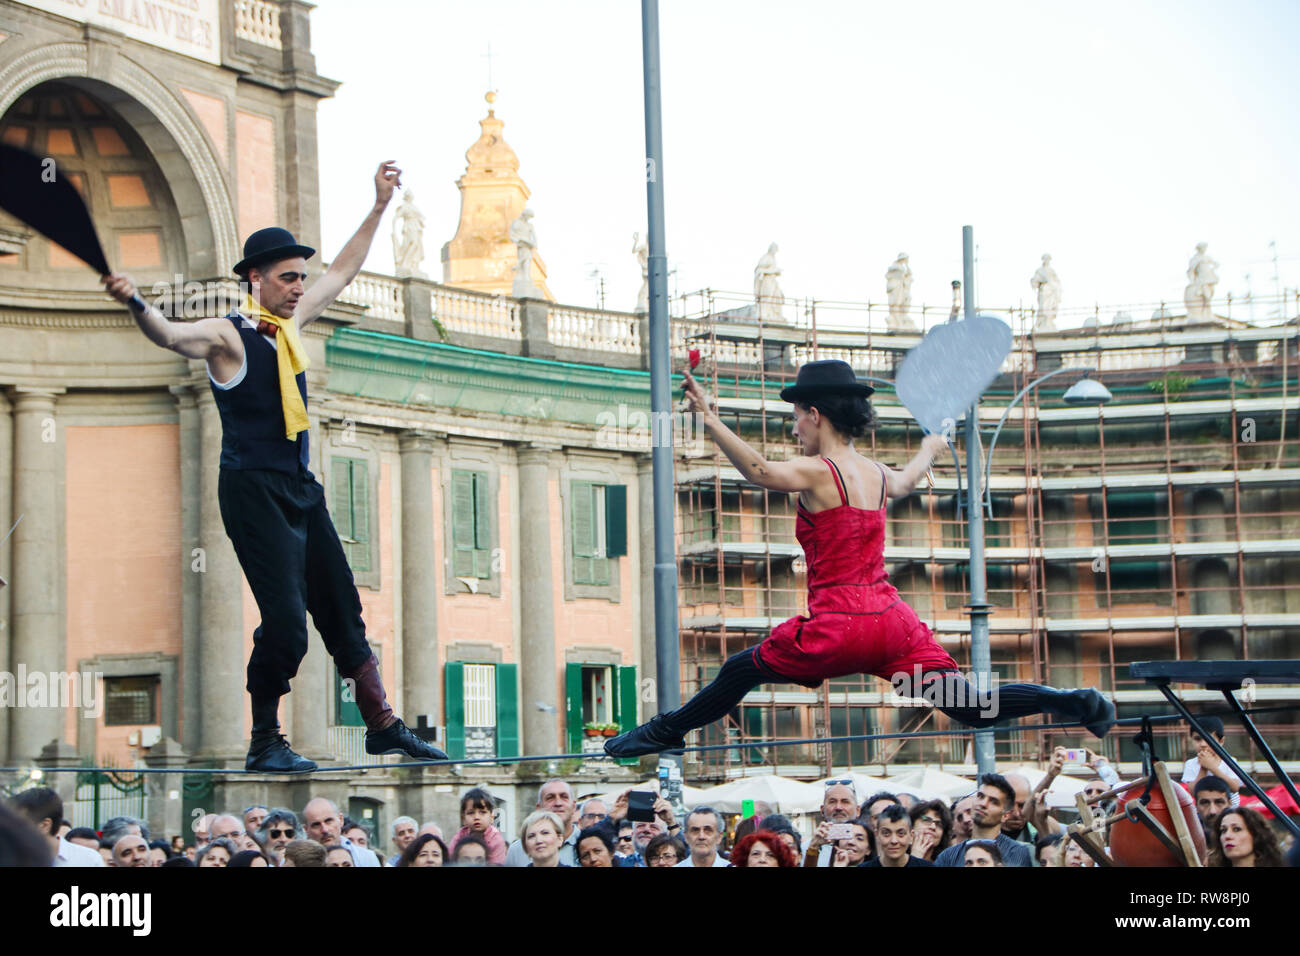 At Naples, Italy, On june, 09/2018 - tightrope walkers at Piazza Dante - Stock Image